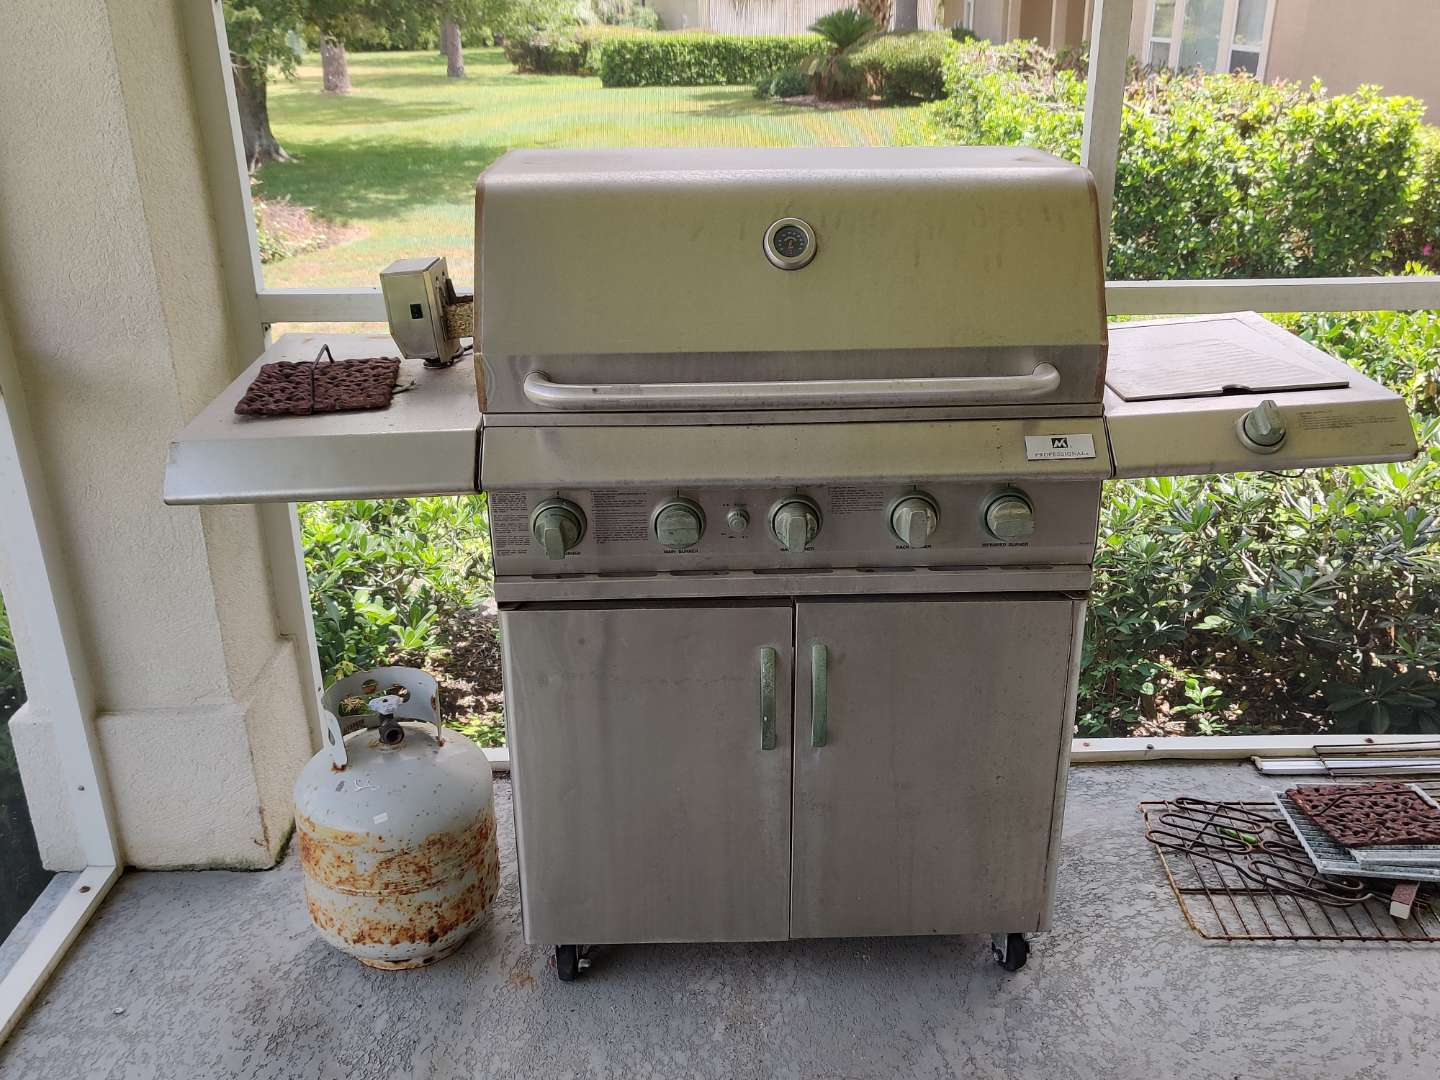 316 gas grill professional brand two side burners